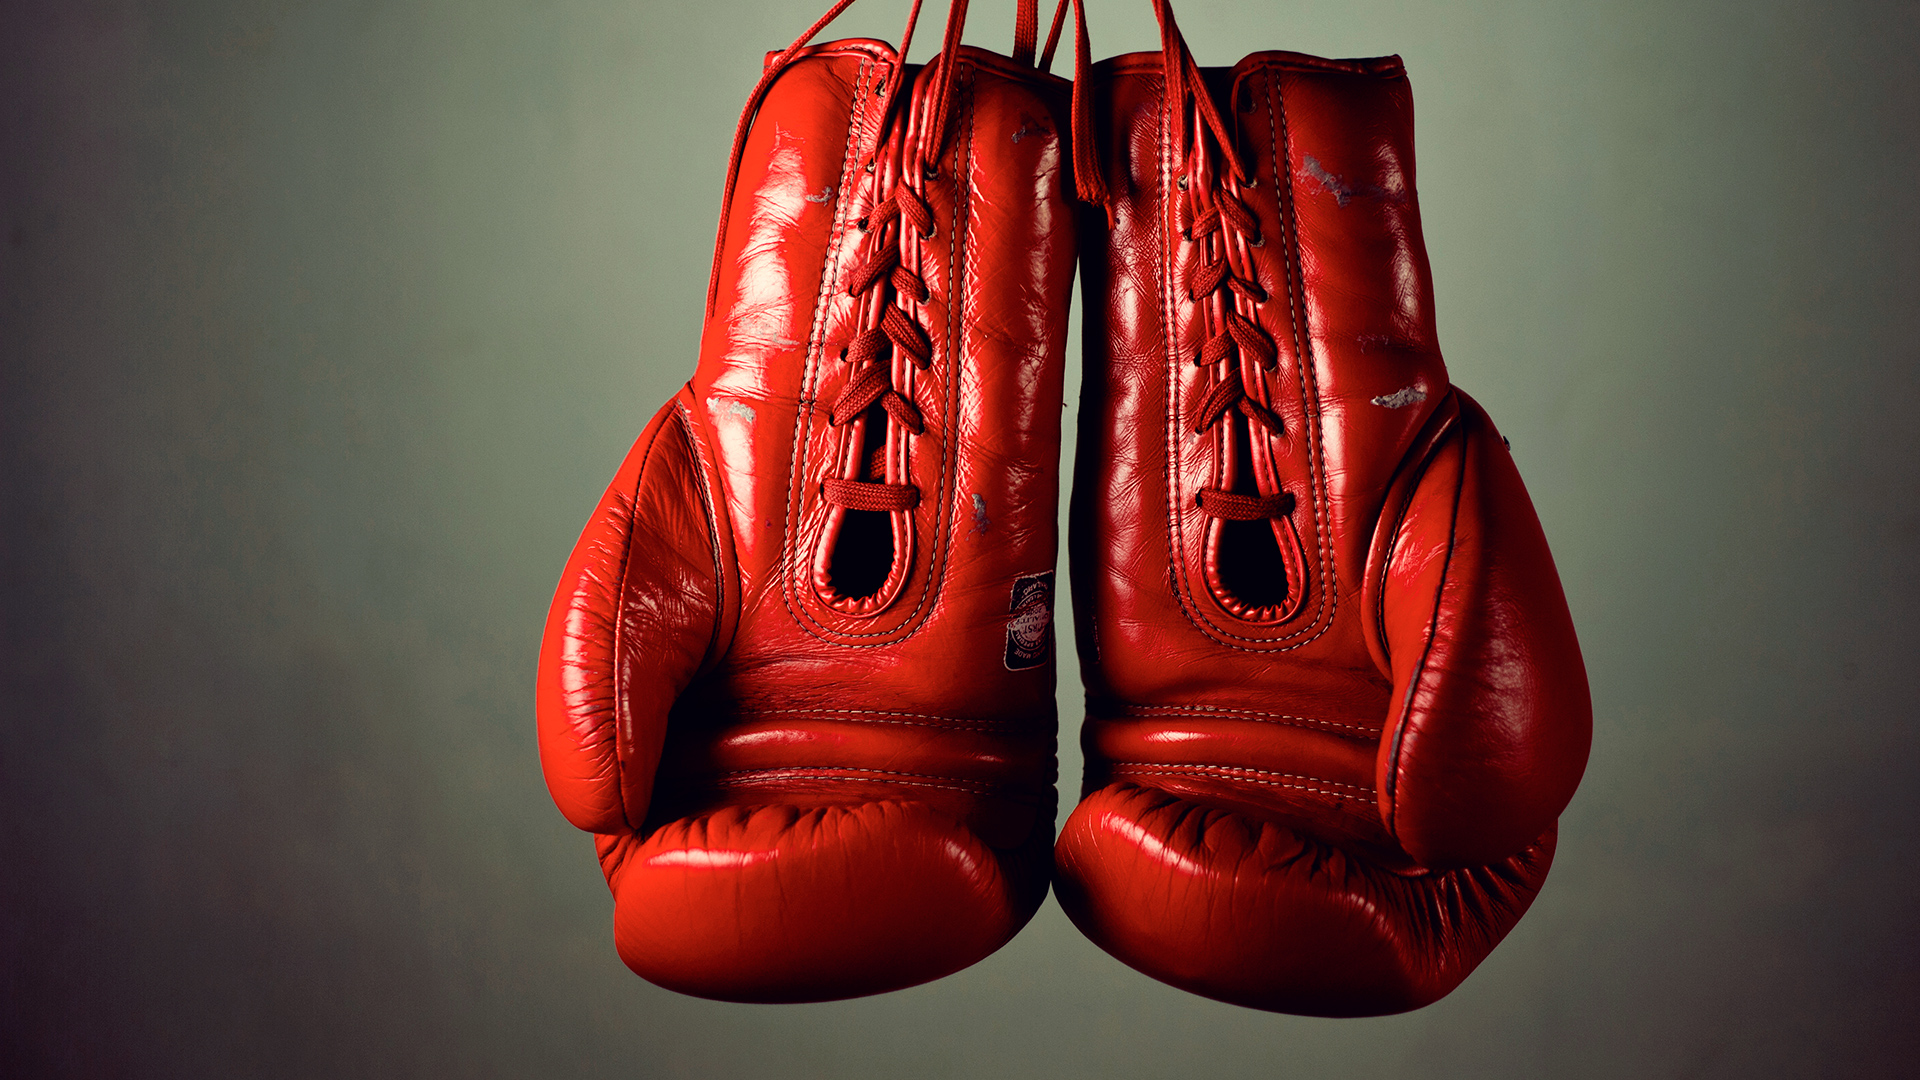 Hd Wallpaper Quotes Widescreen Download Free Boxing Gloves Wallpaper Pixelstalk Net